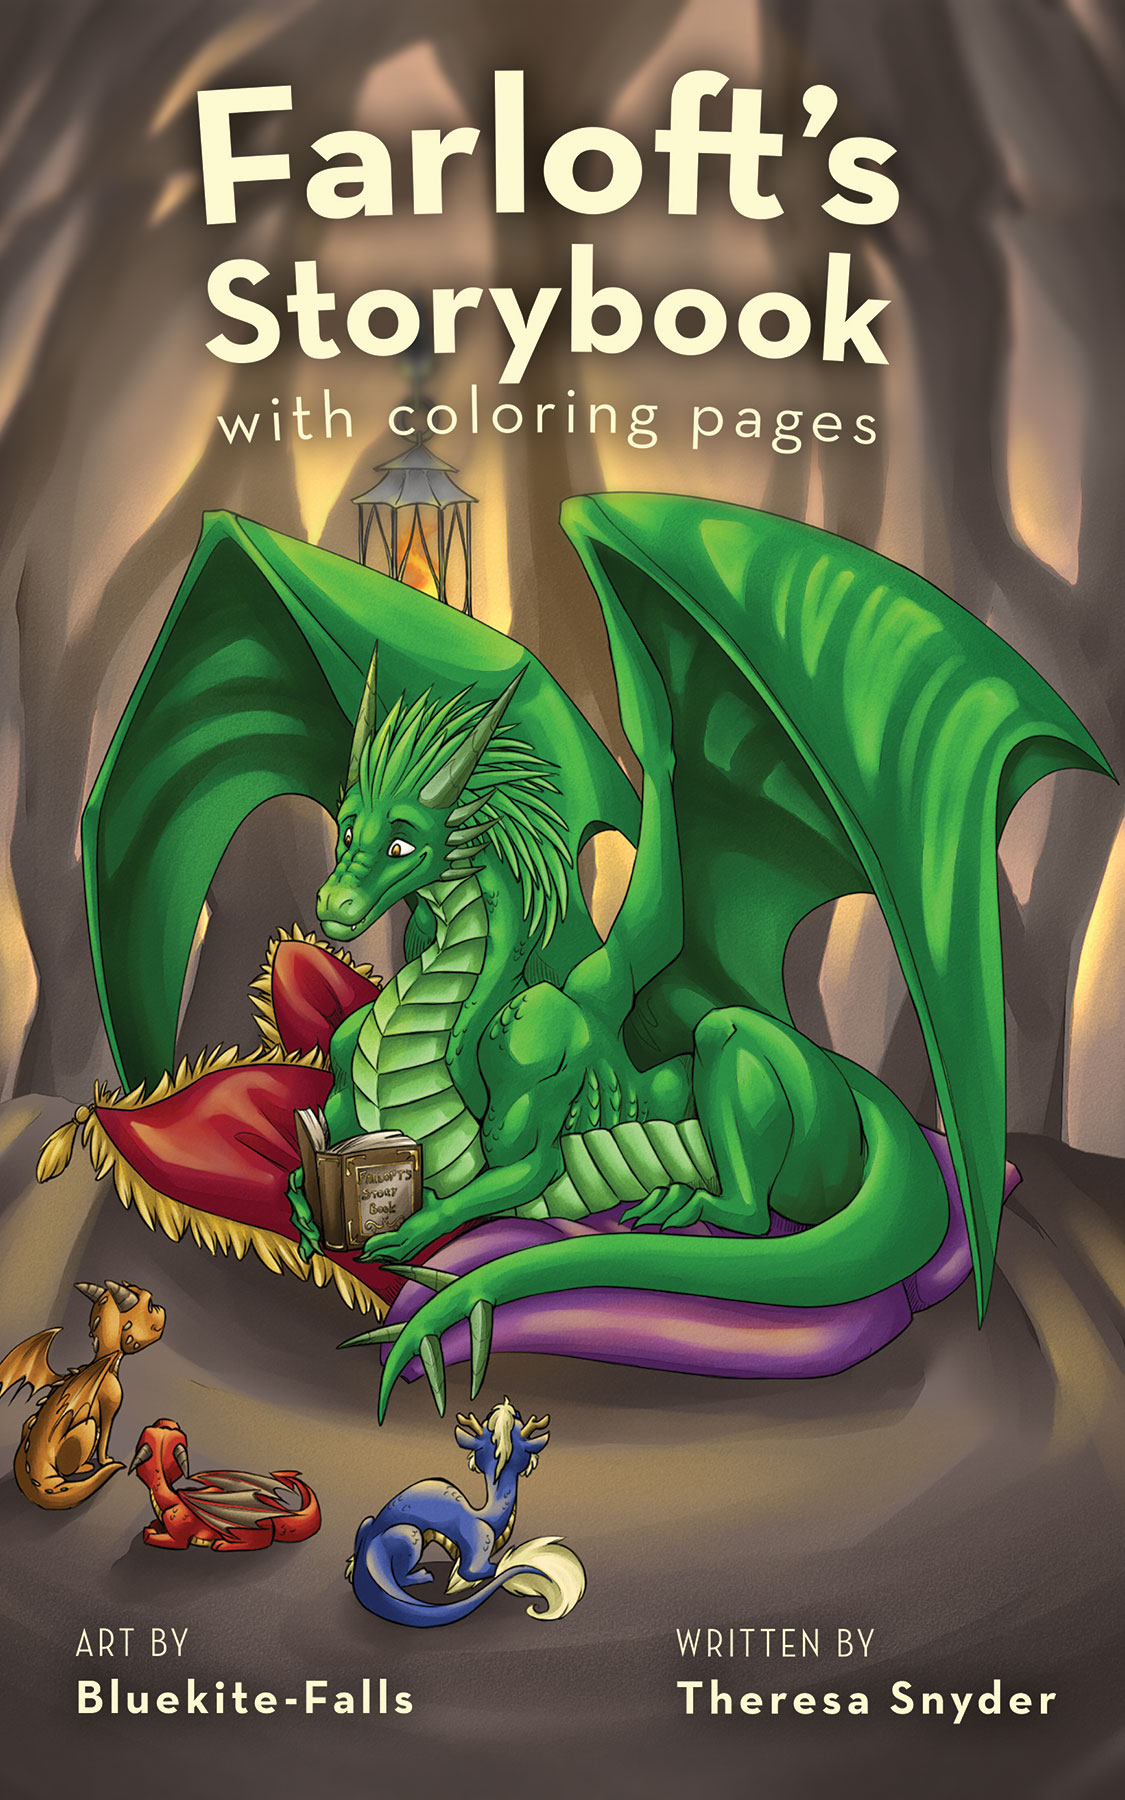 Farloft's Storybook